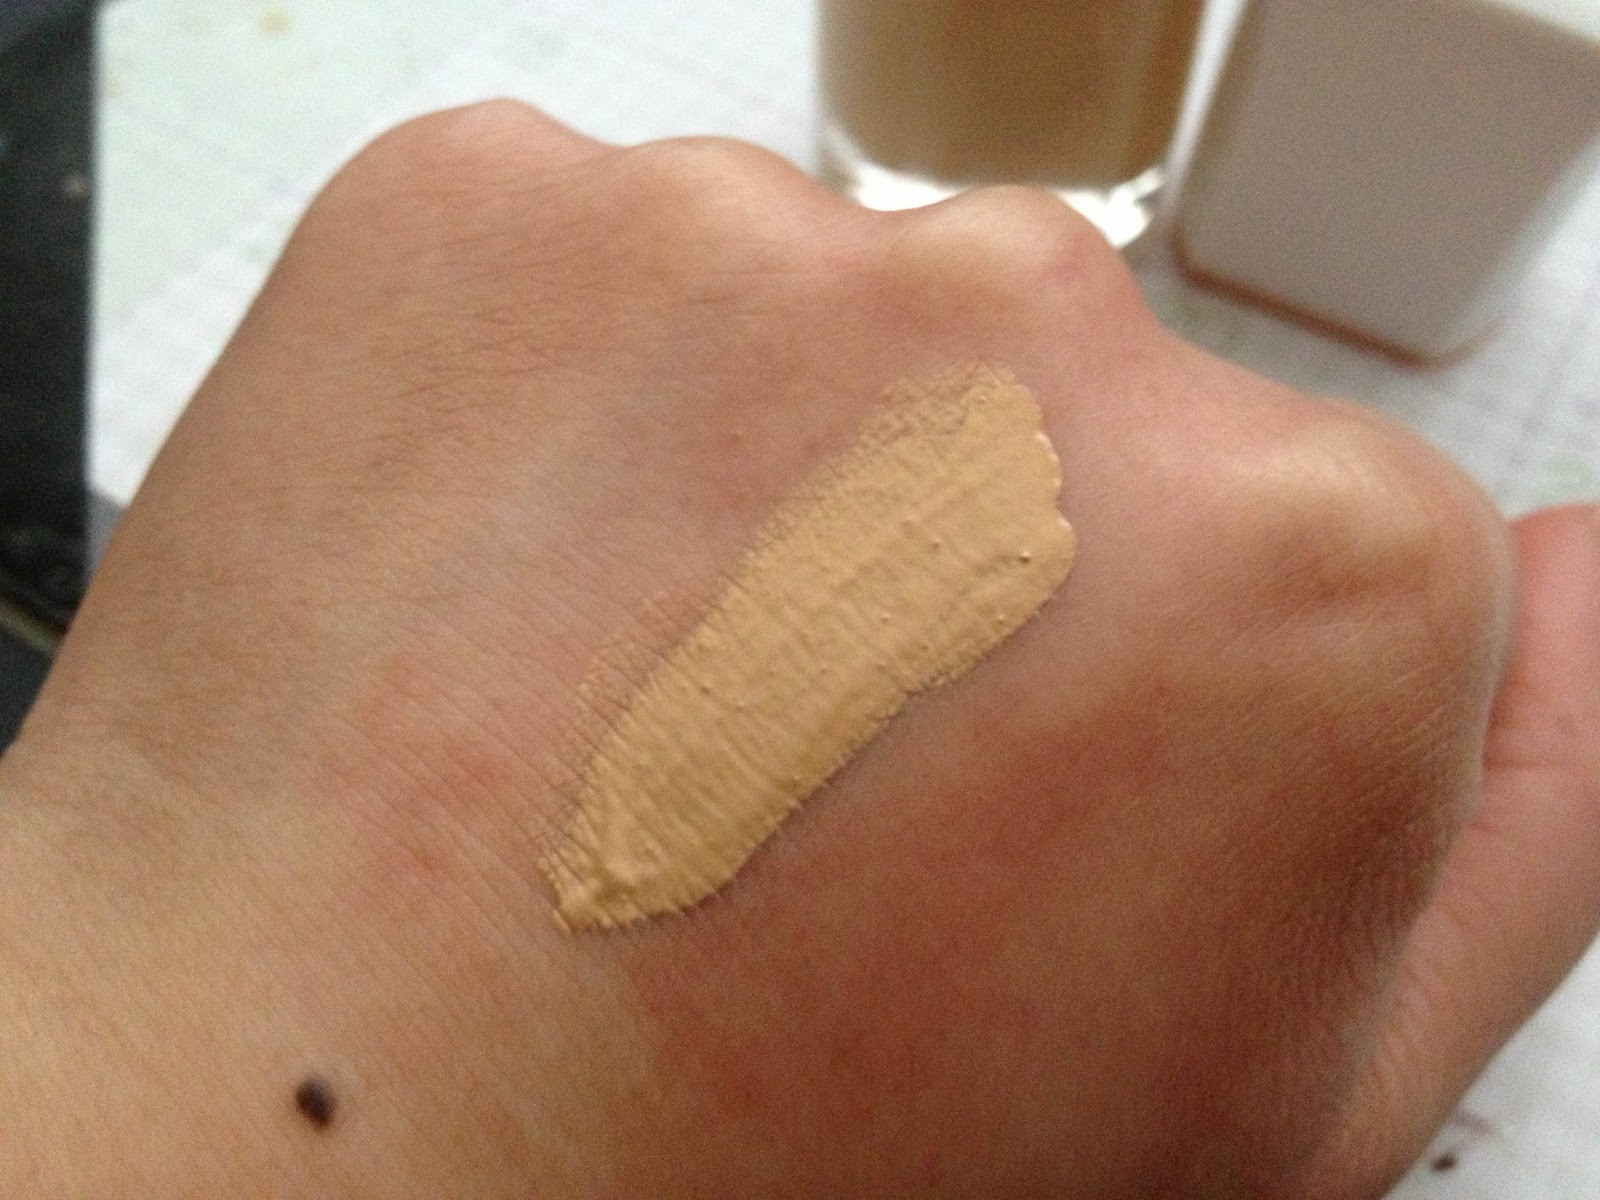 N2xquisite weekend haul new drew barrymore flower cosmetics here is a swatch of the foundation and as you can see this shade has a yellow undertone yayy i am lightmedium at the moment and this was one of the izmirmasajfo